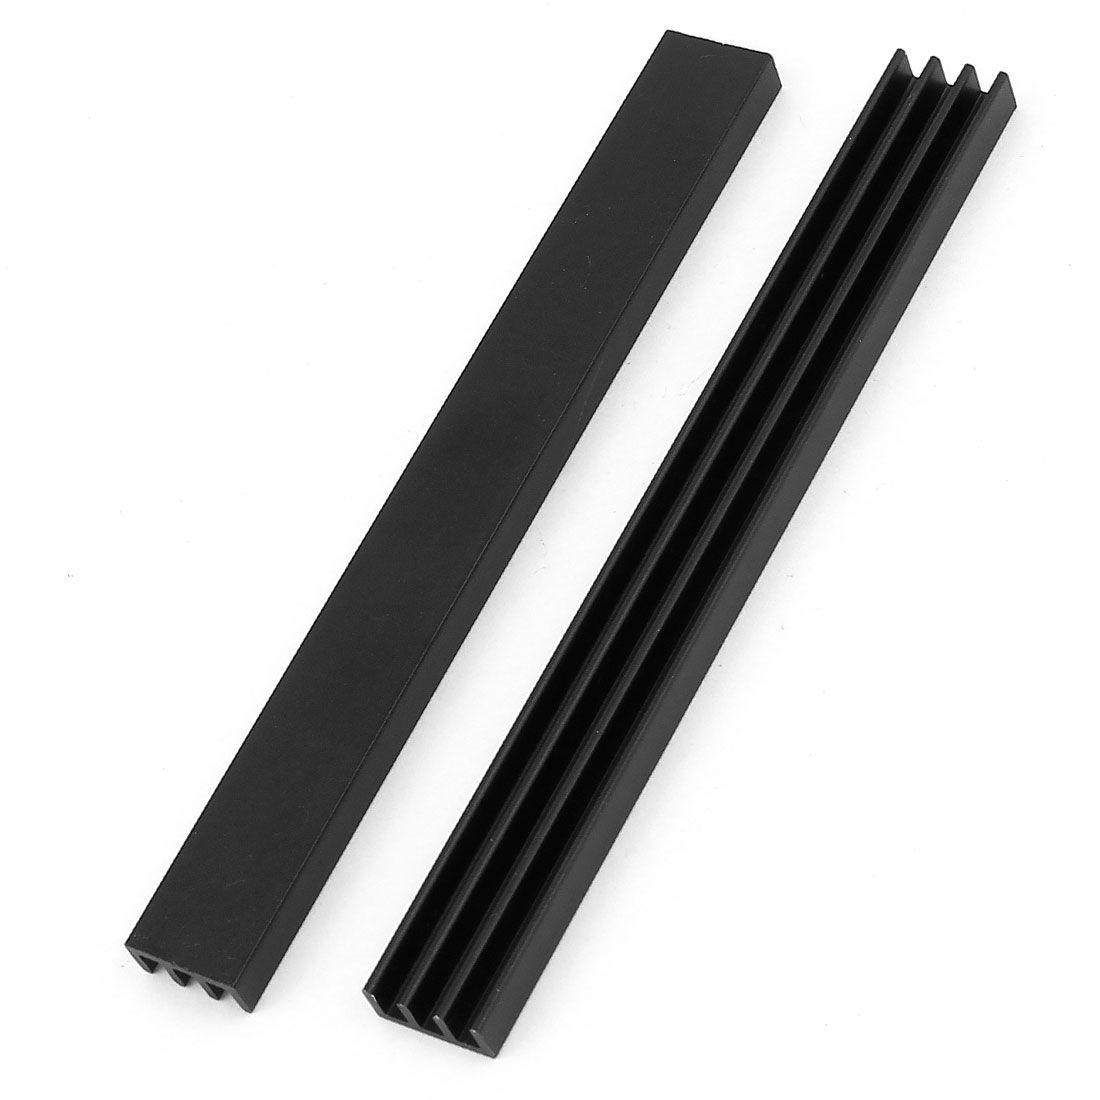 2 Pcs Black Aluminum Radiator Heat Sink Heatsink 100x11x5mm